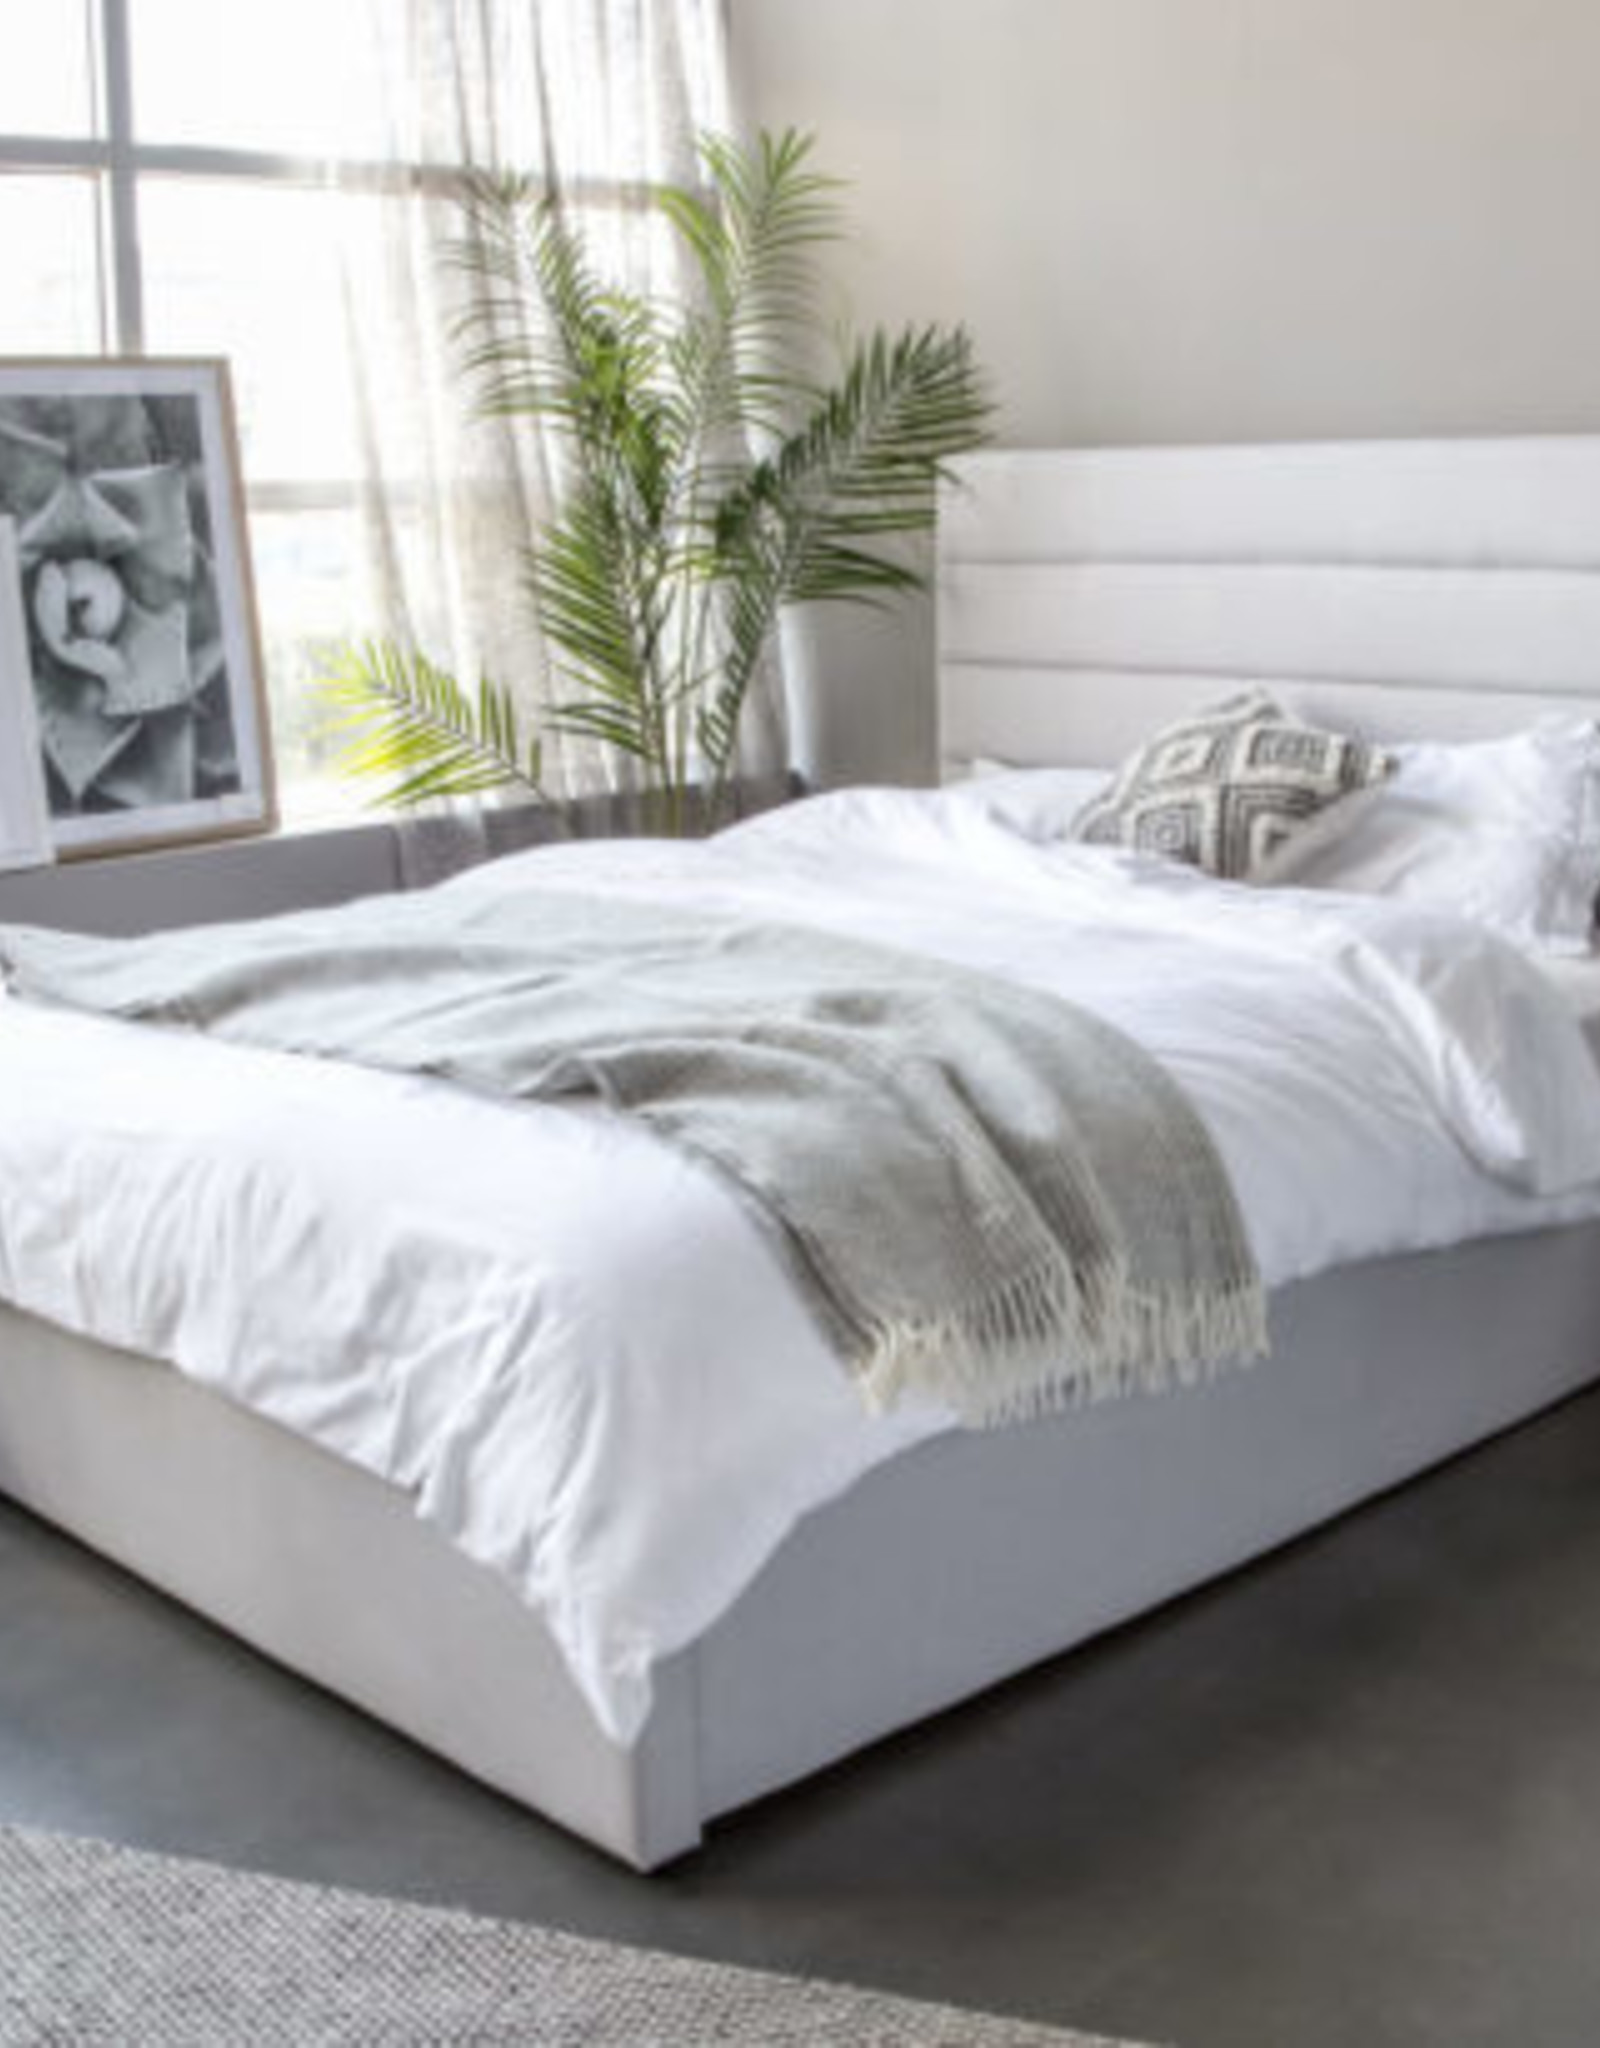 Style In Form SIF Justin Bed Tall Horizon Grey Queen JUS-024